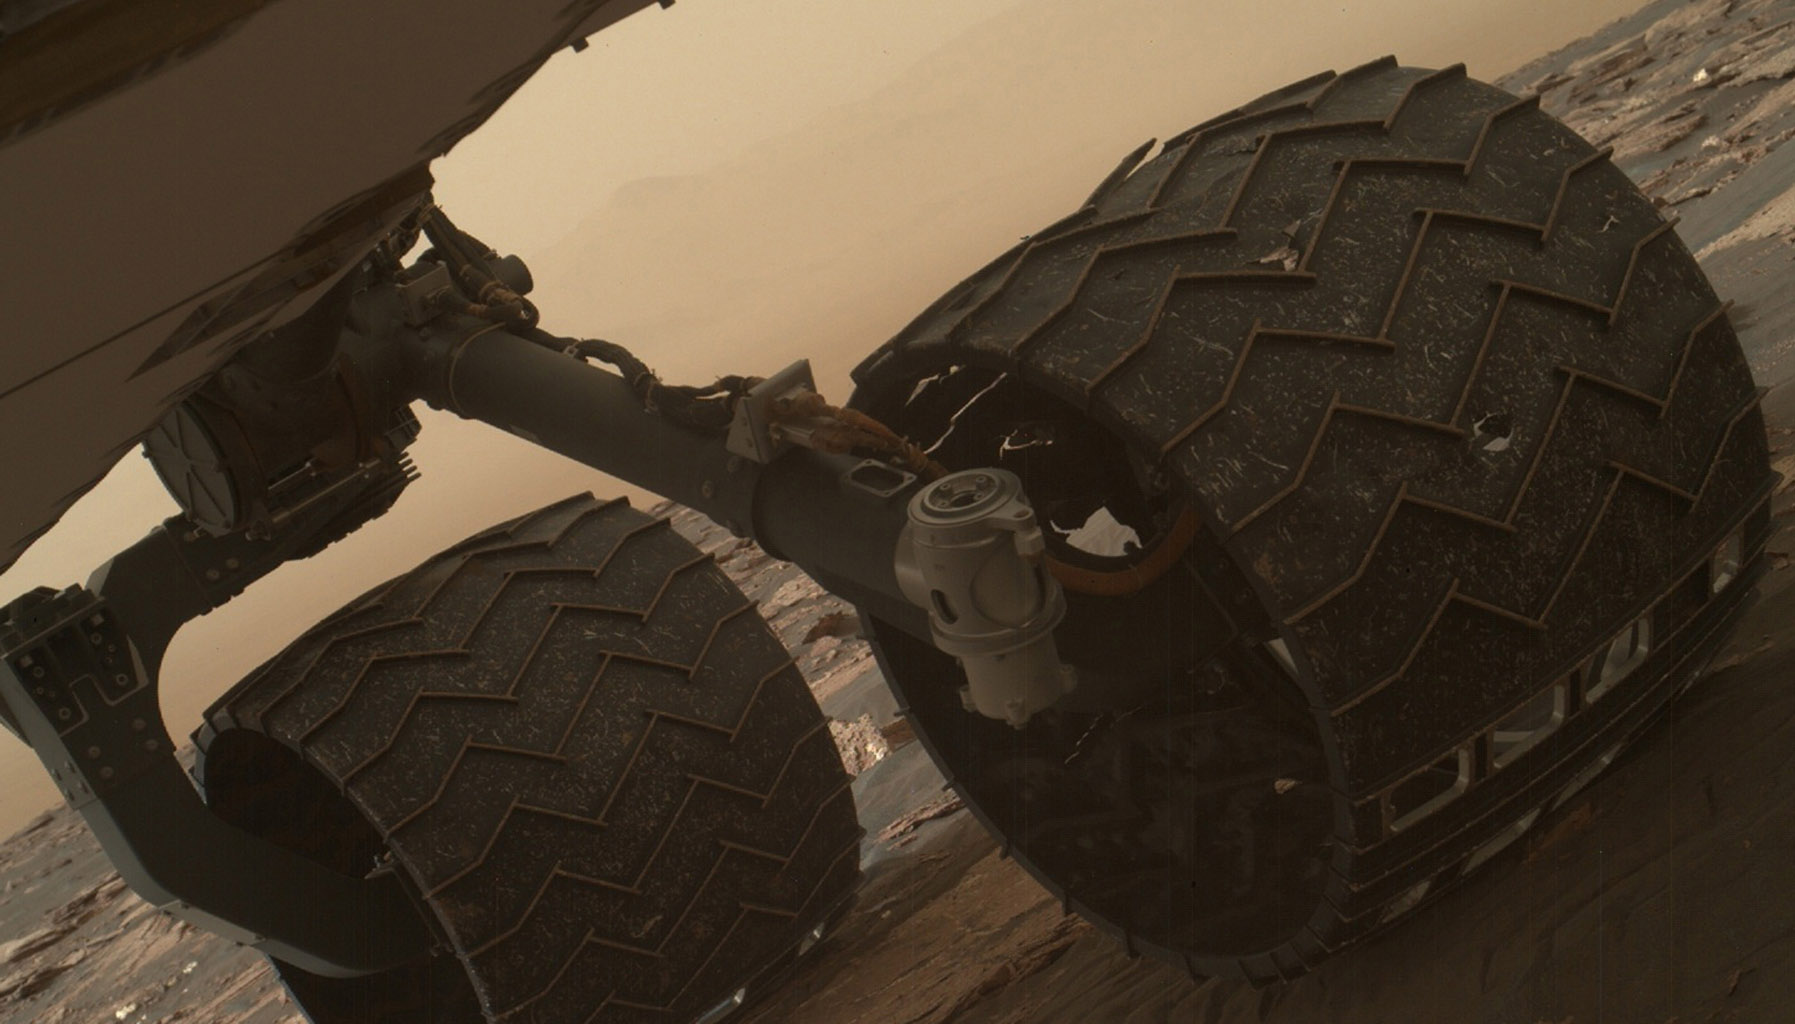 Two of the raised treads, called grousers, on the left middle wheel of NASA's Curiosity Mars rover broke during the first quarter of 2017, seen is the partially detached at the top of the wheel in this image from the MAHLI camera on the rover's arm.